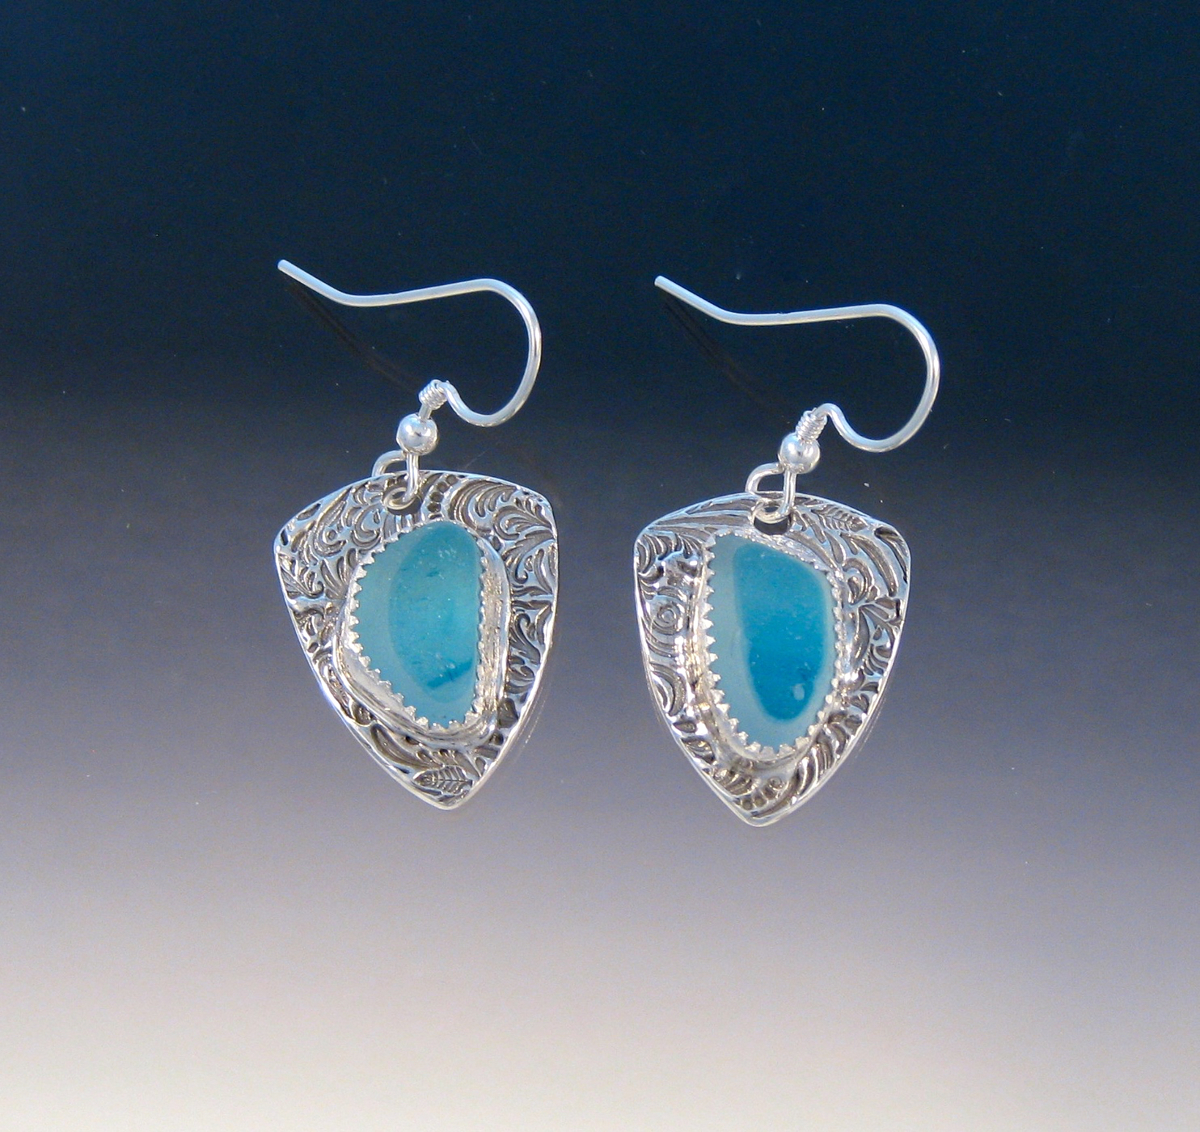 E993 - Baby blue flash glass in shield earrings (large view)